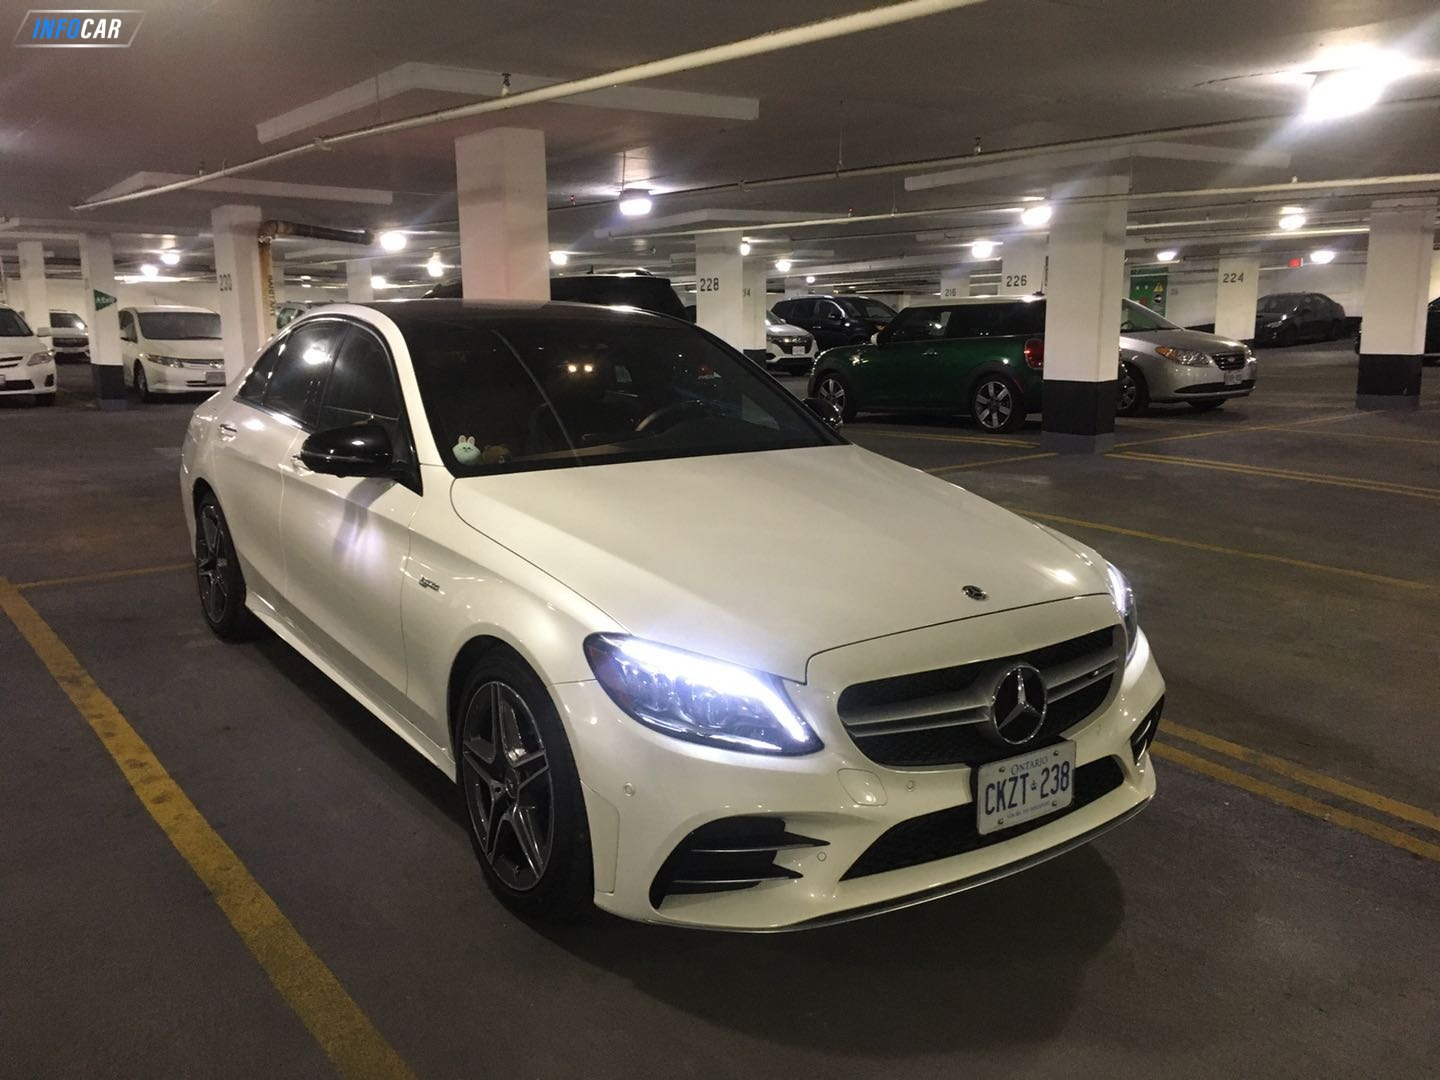 2019 Mercedes-Benz C-Class 43 - INFOCAR - Toronto's Most Comprehensive New and Used Auto Trading Platform